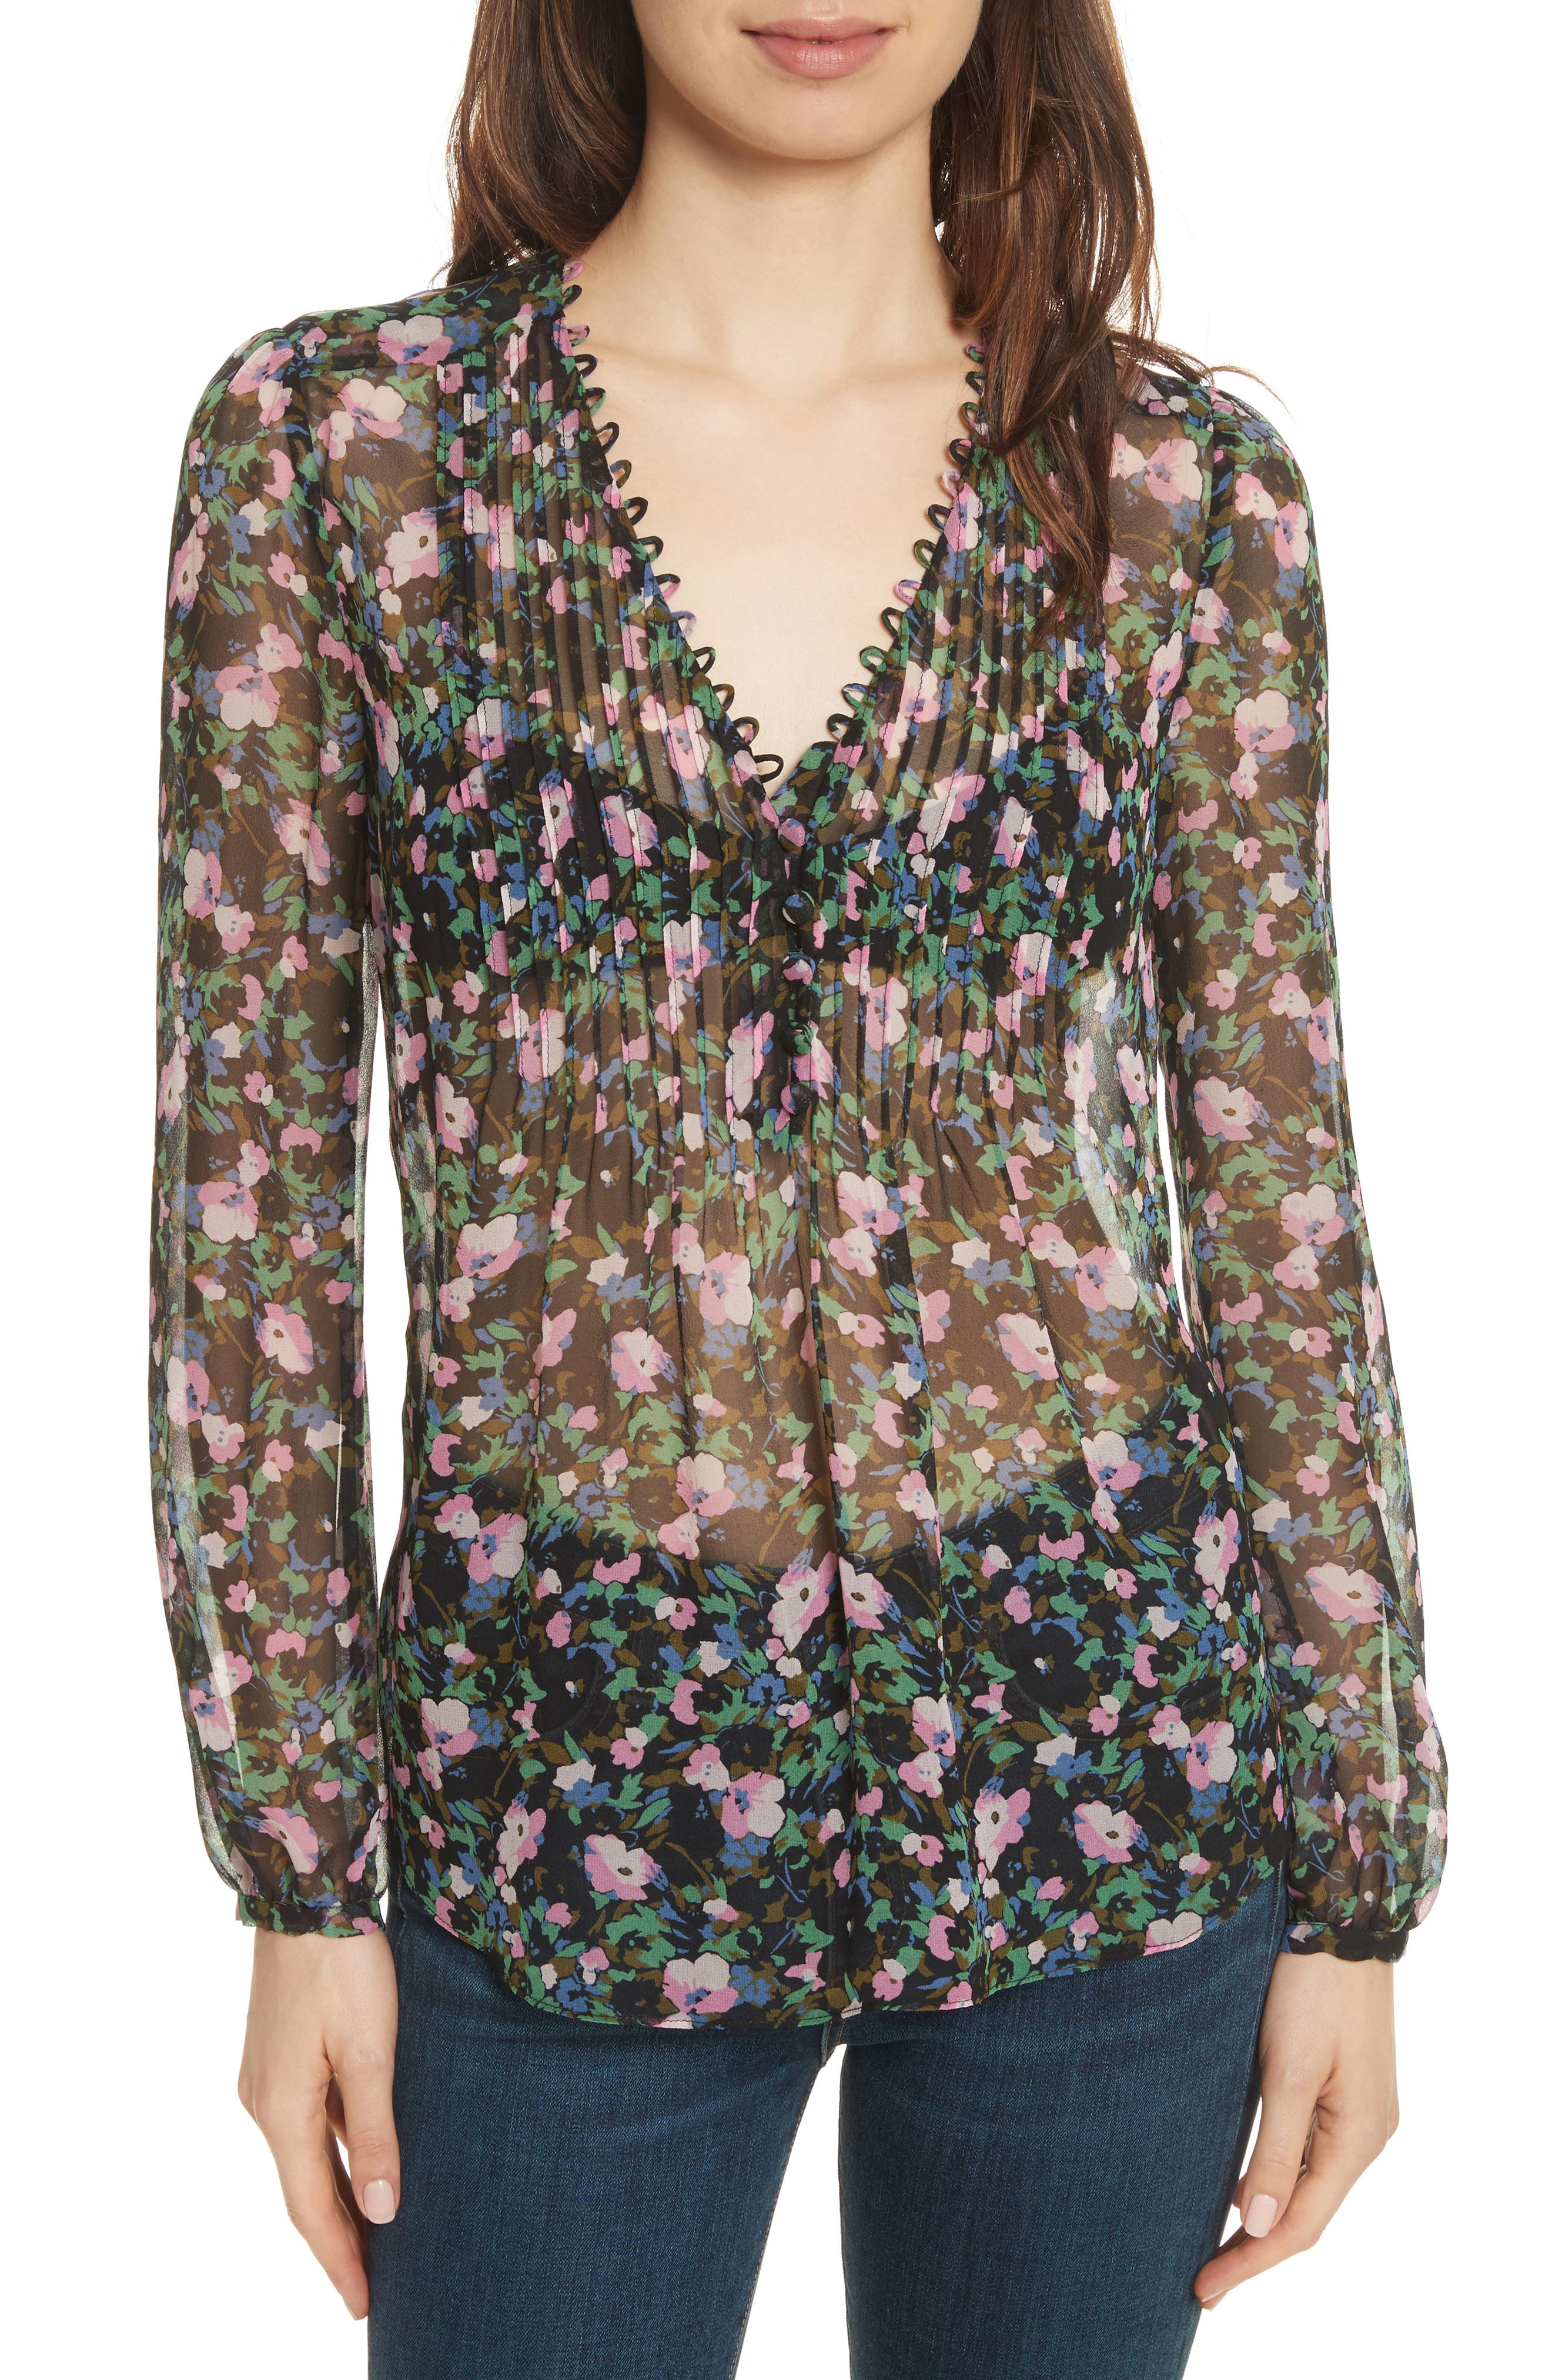 Lowell Floral Silk Blouse,                         Main,                         color, Navy/ Green/ Pink